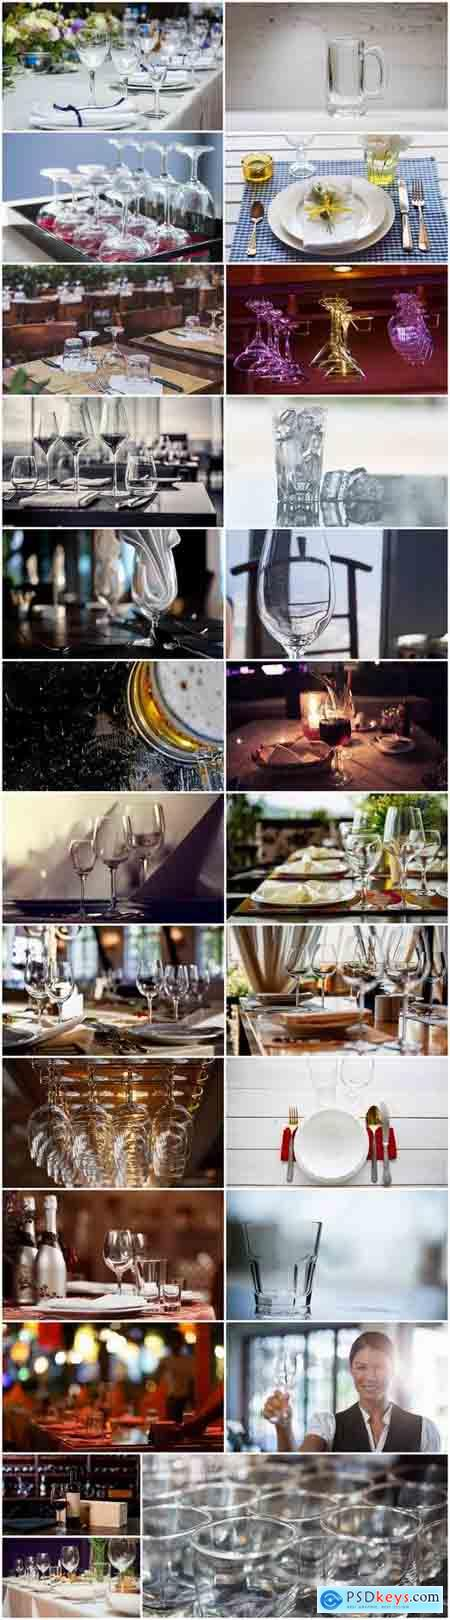 Glass goblet glassware holiday banquet table setting 25 HQ Jpeg